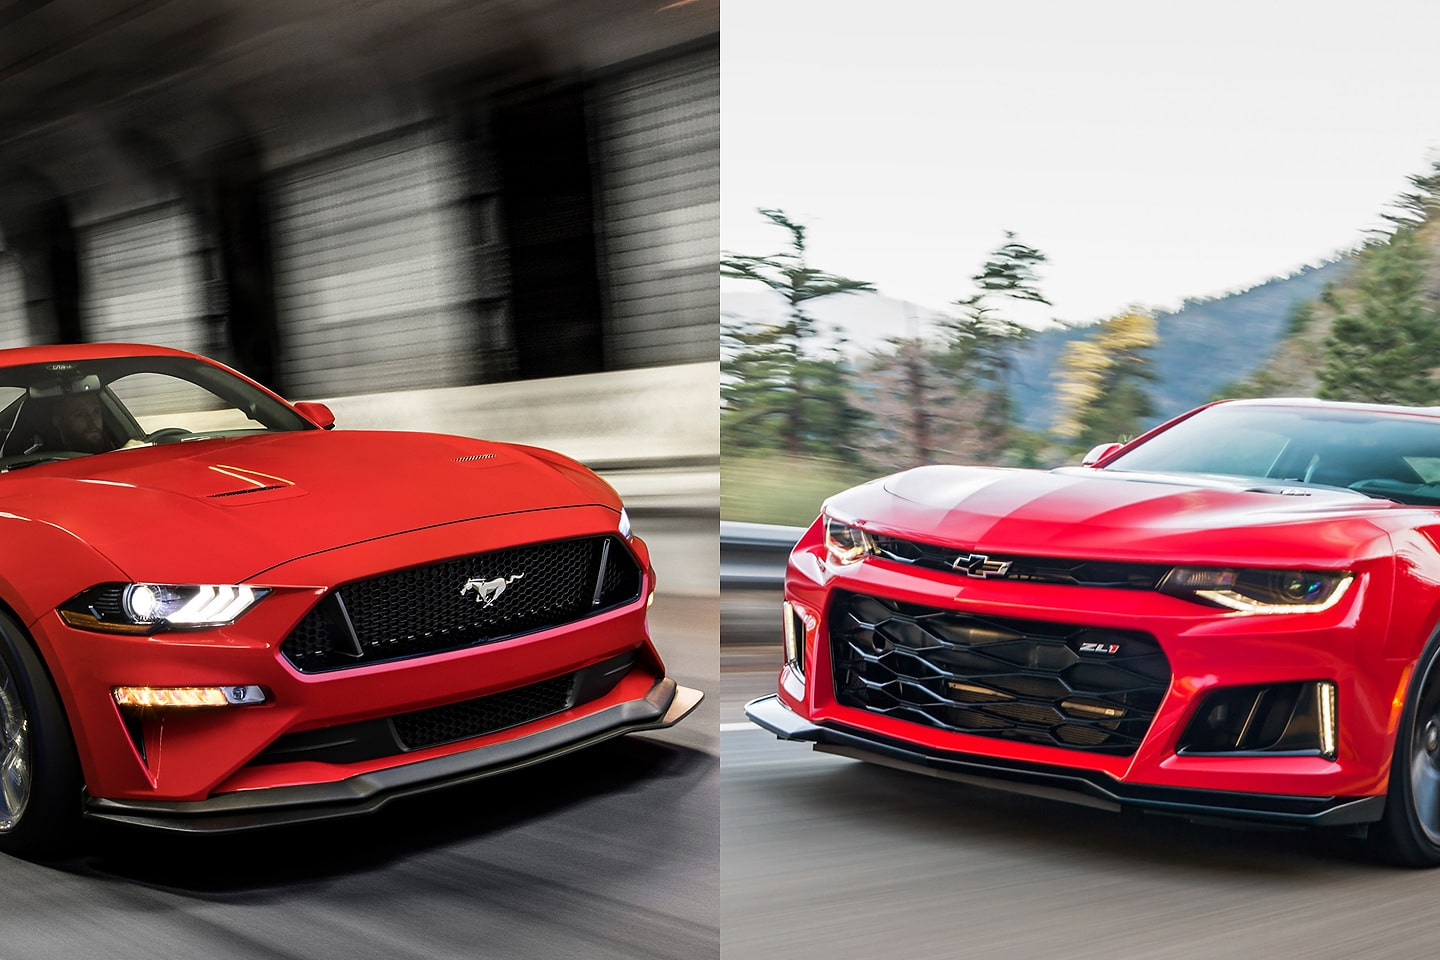 2019 ford mustang vs 2019 chevrolet camaro